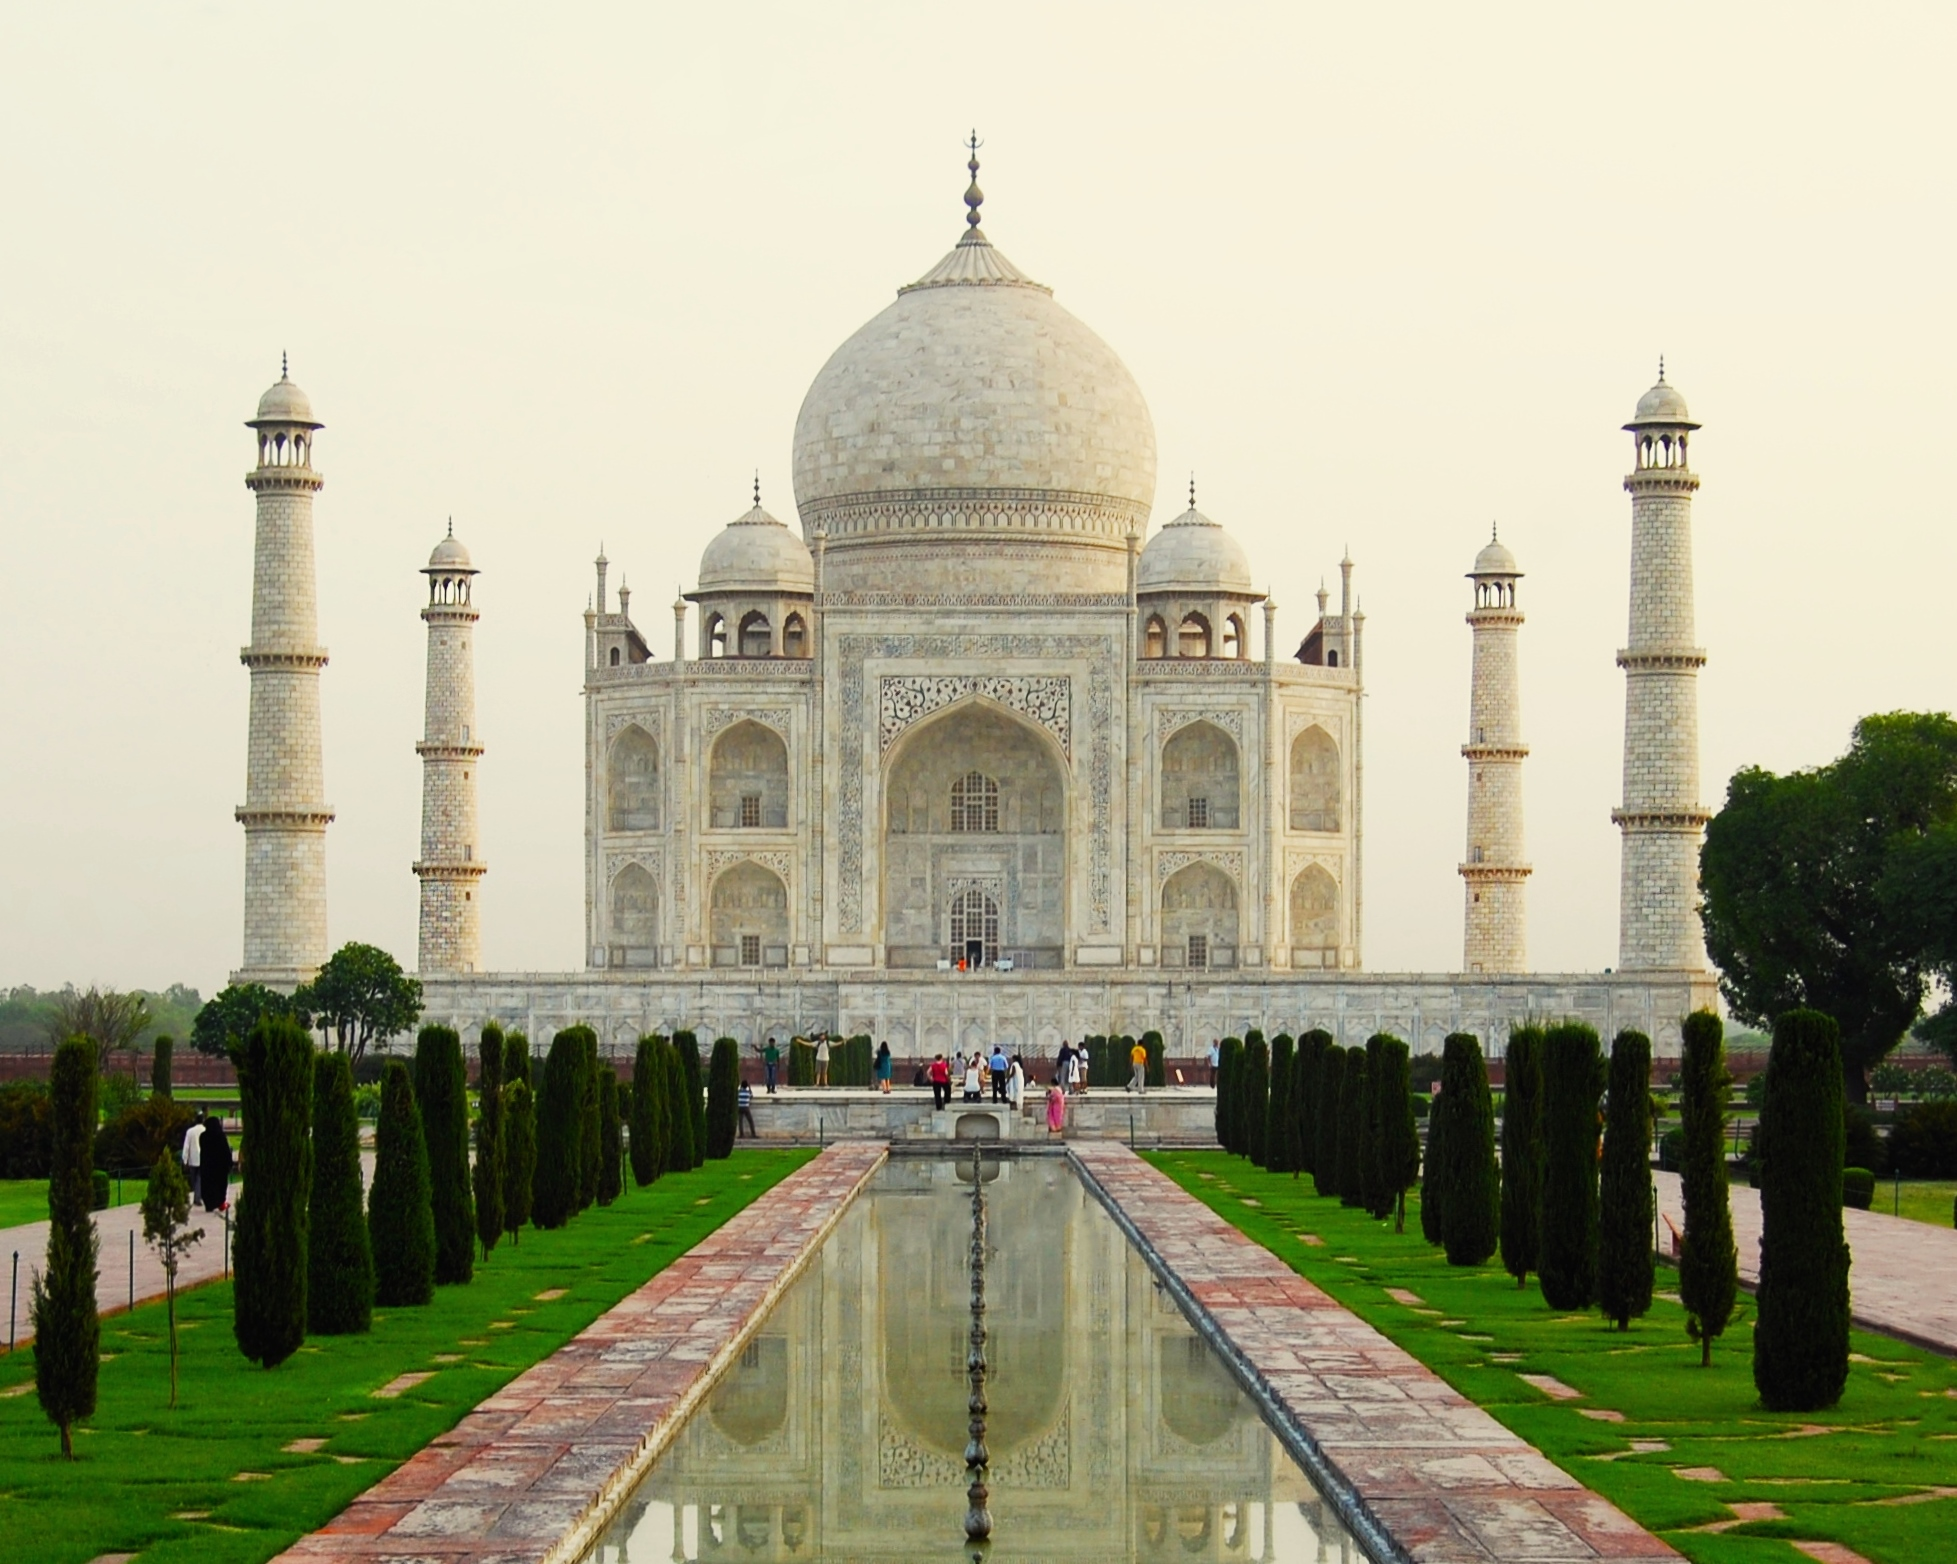 Some Most Famous Historical Places in India